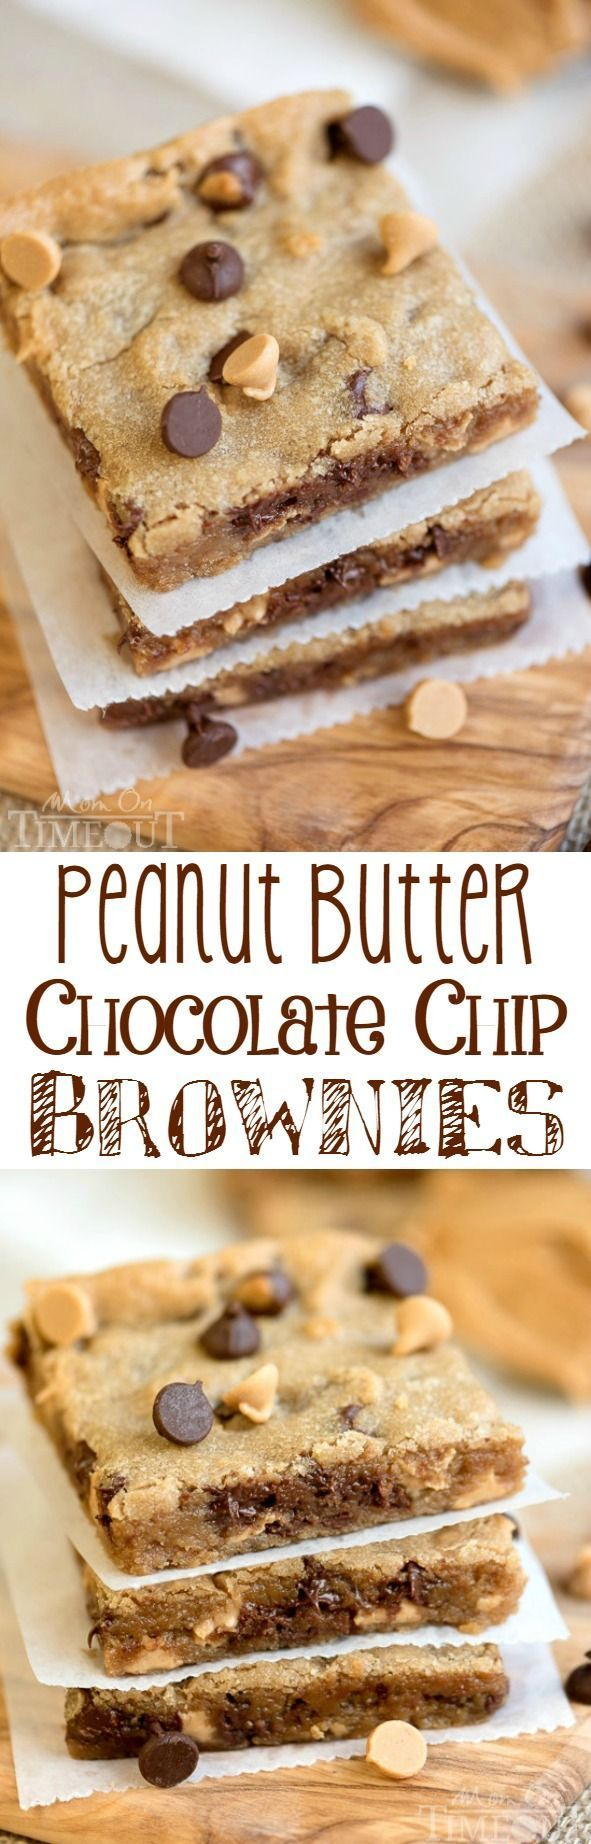 Perfectly moist, decadent, and fudgy, these sinful Peanut Butter Chocolate Chip Brownies will redefine your love for peanut butter. The perfect easy dessert recipe for peanut butter and chocolate lovers!|